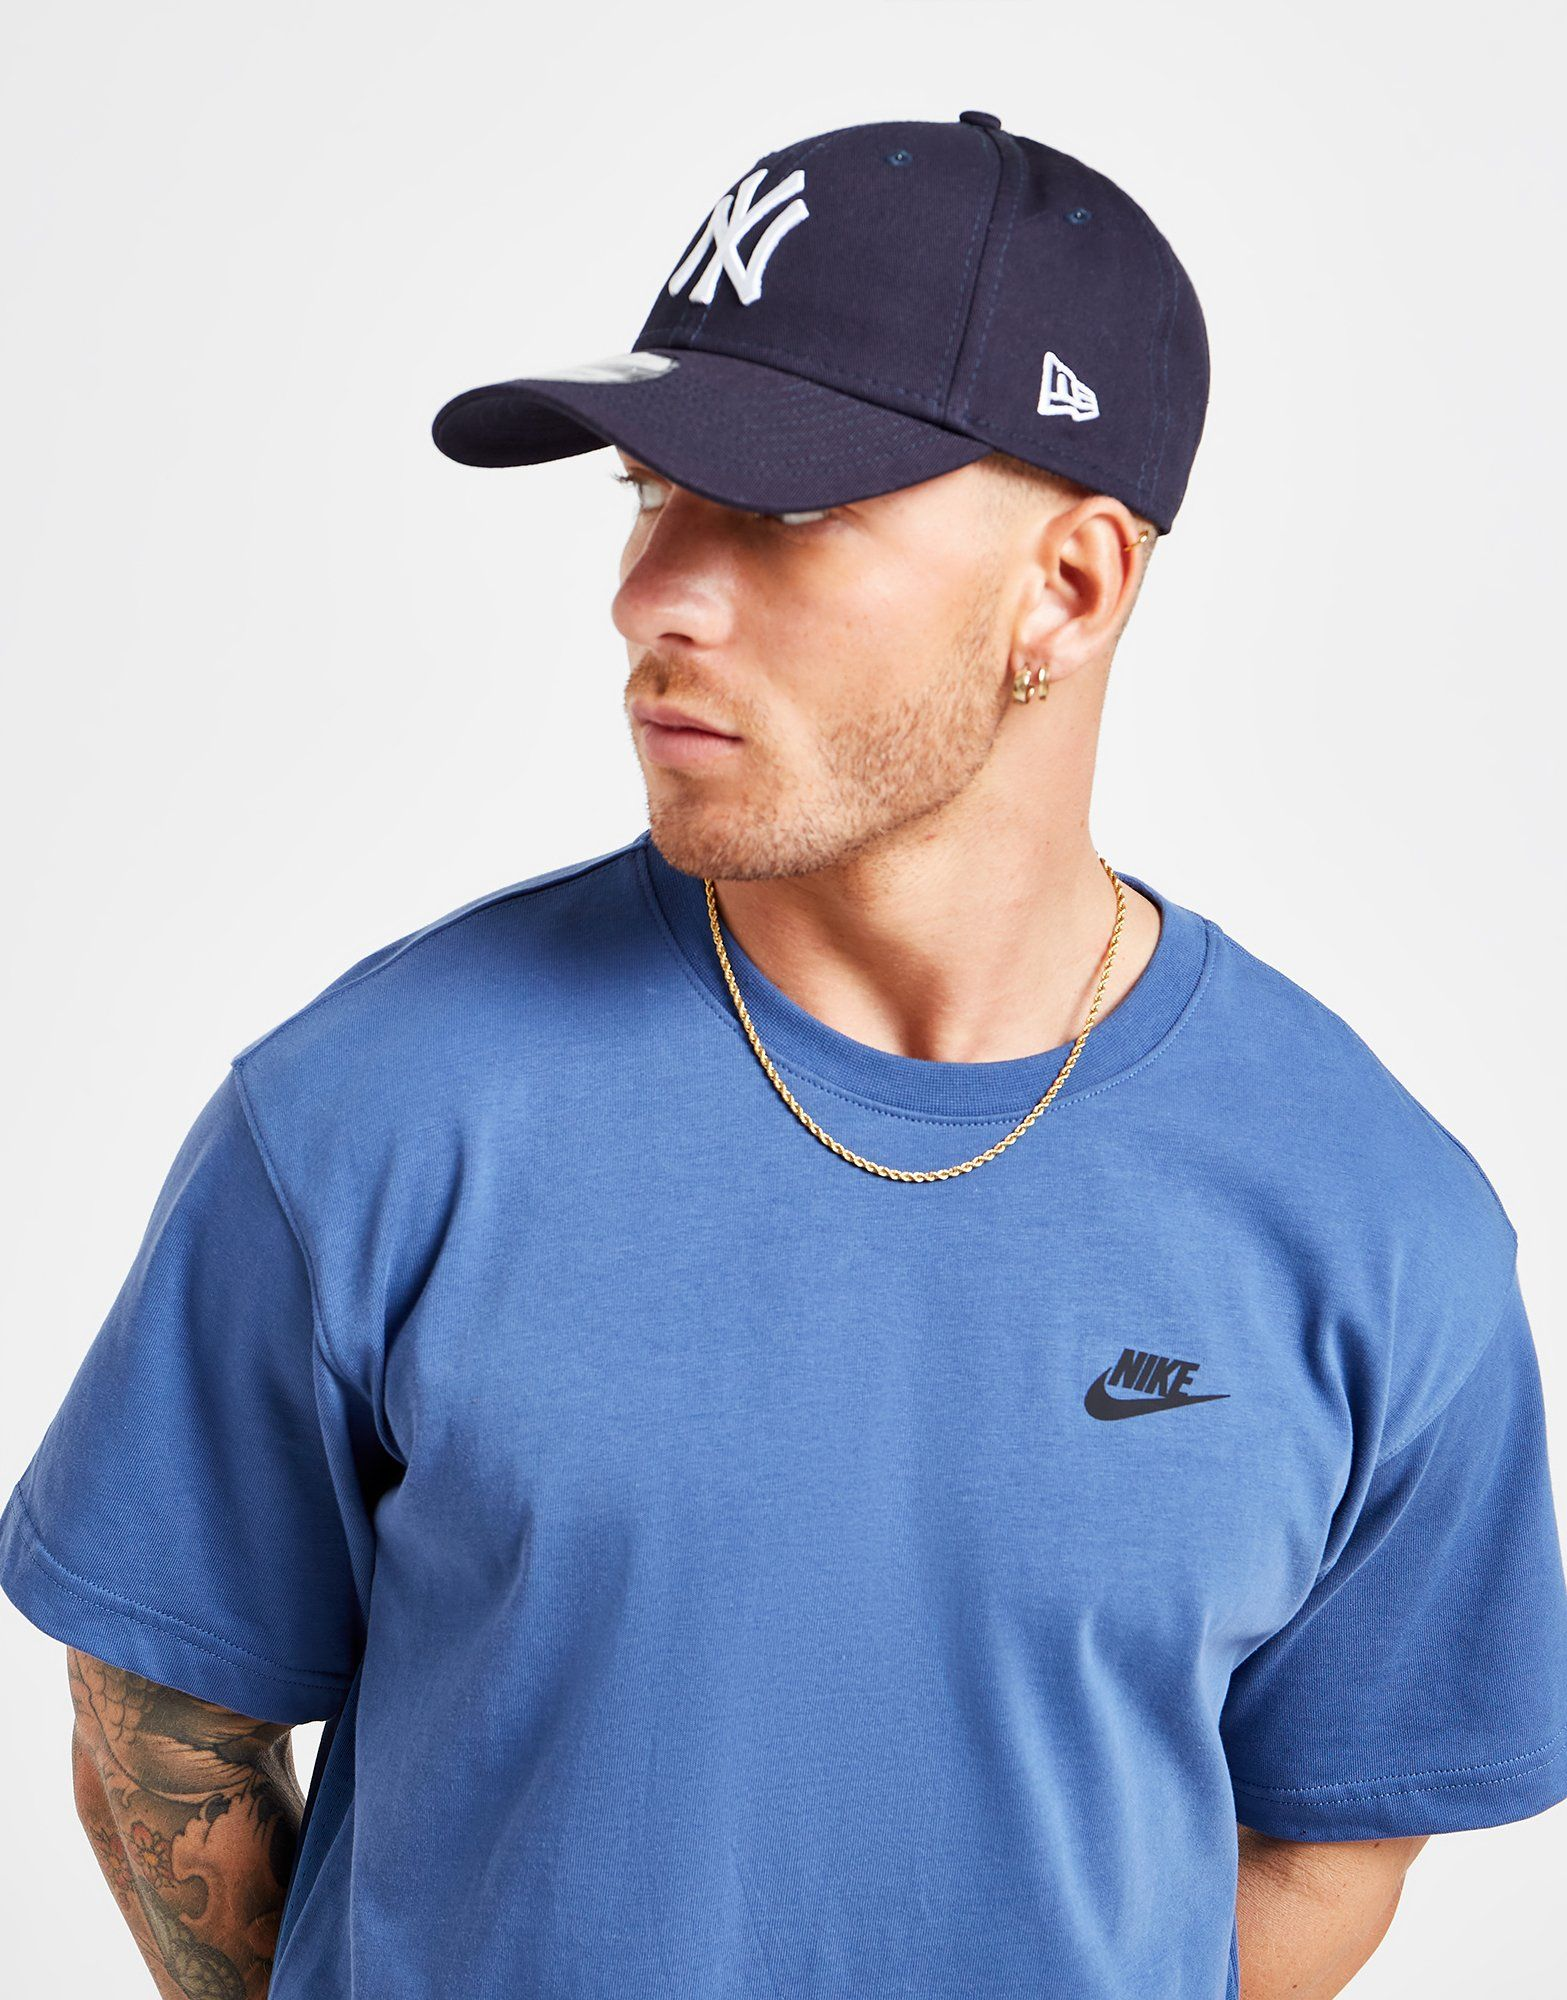 New Era MLB New York Yankees 9FORTY Cap  058d69d531c